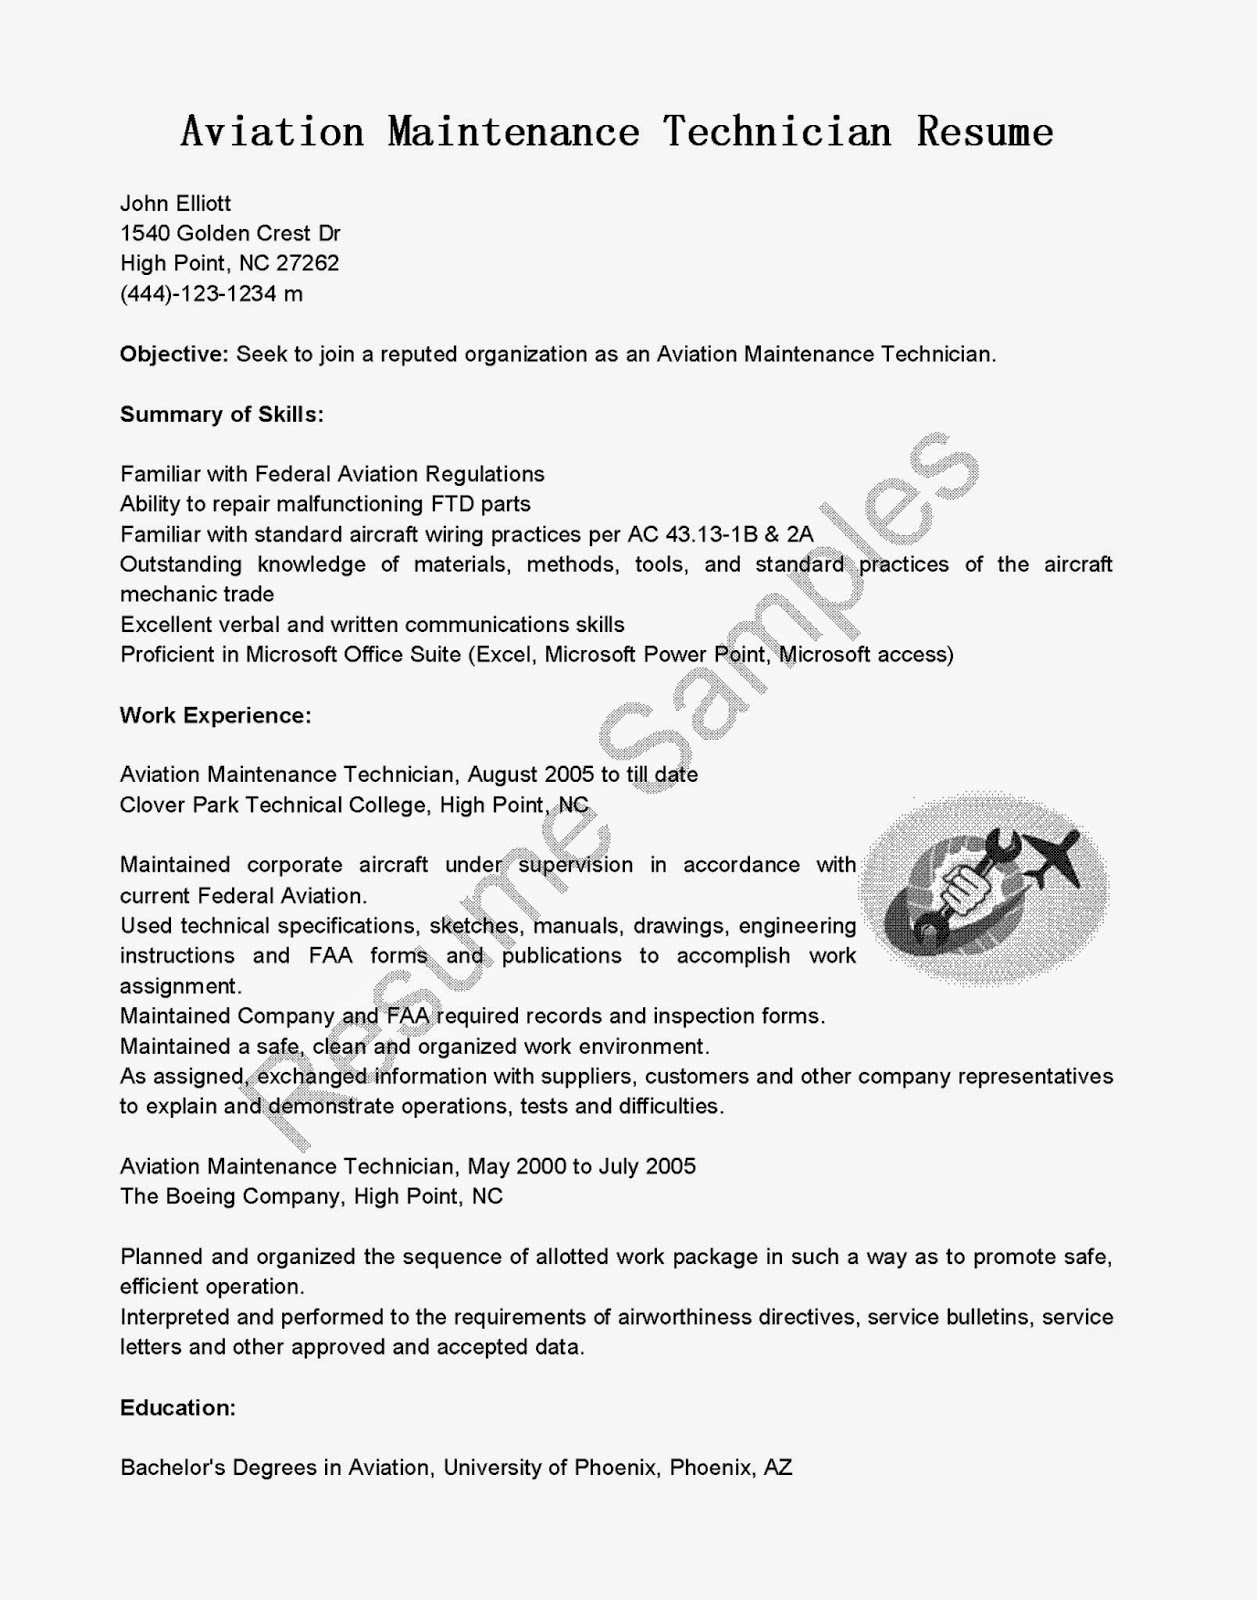 model resume format airline pilot resume template targeted promo pilot resume pdf blank templates accounting assistant - Airline Pilot Resume